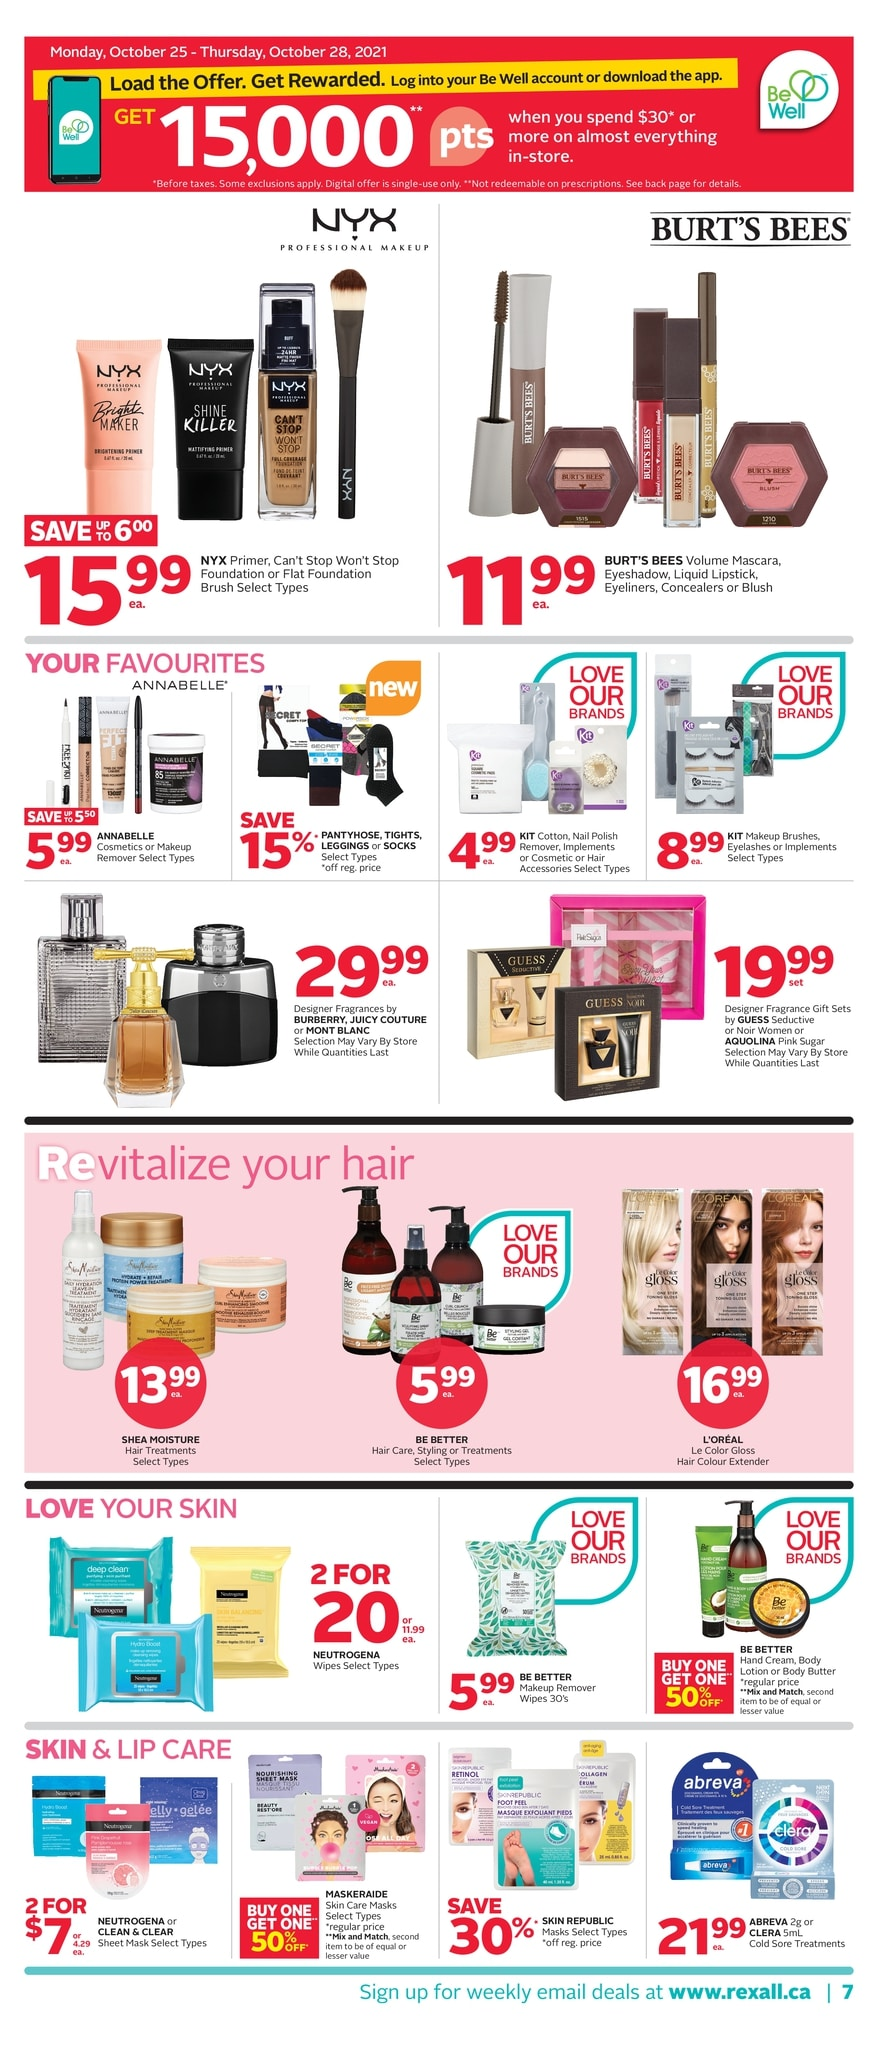 Rexall - Weekly Flyer Specials - Page 10